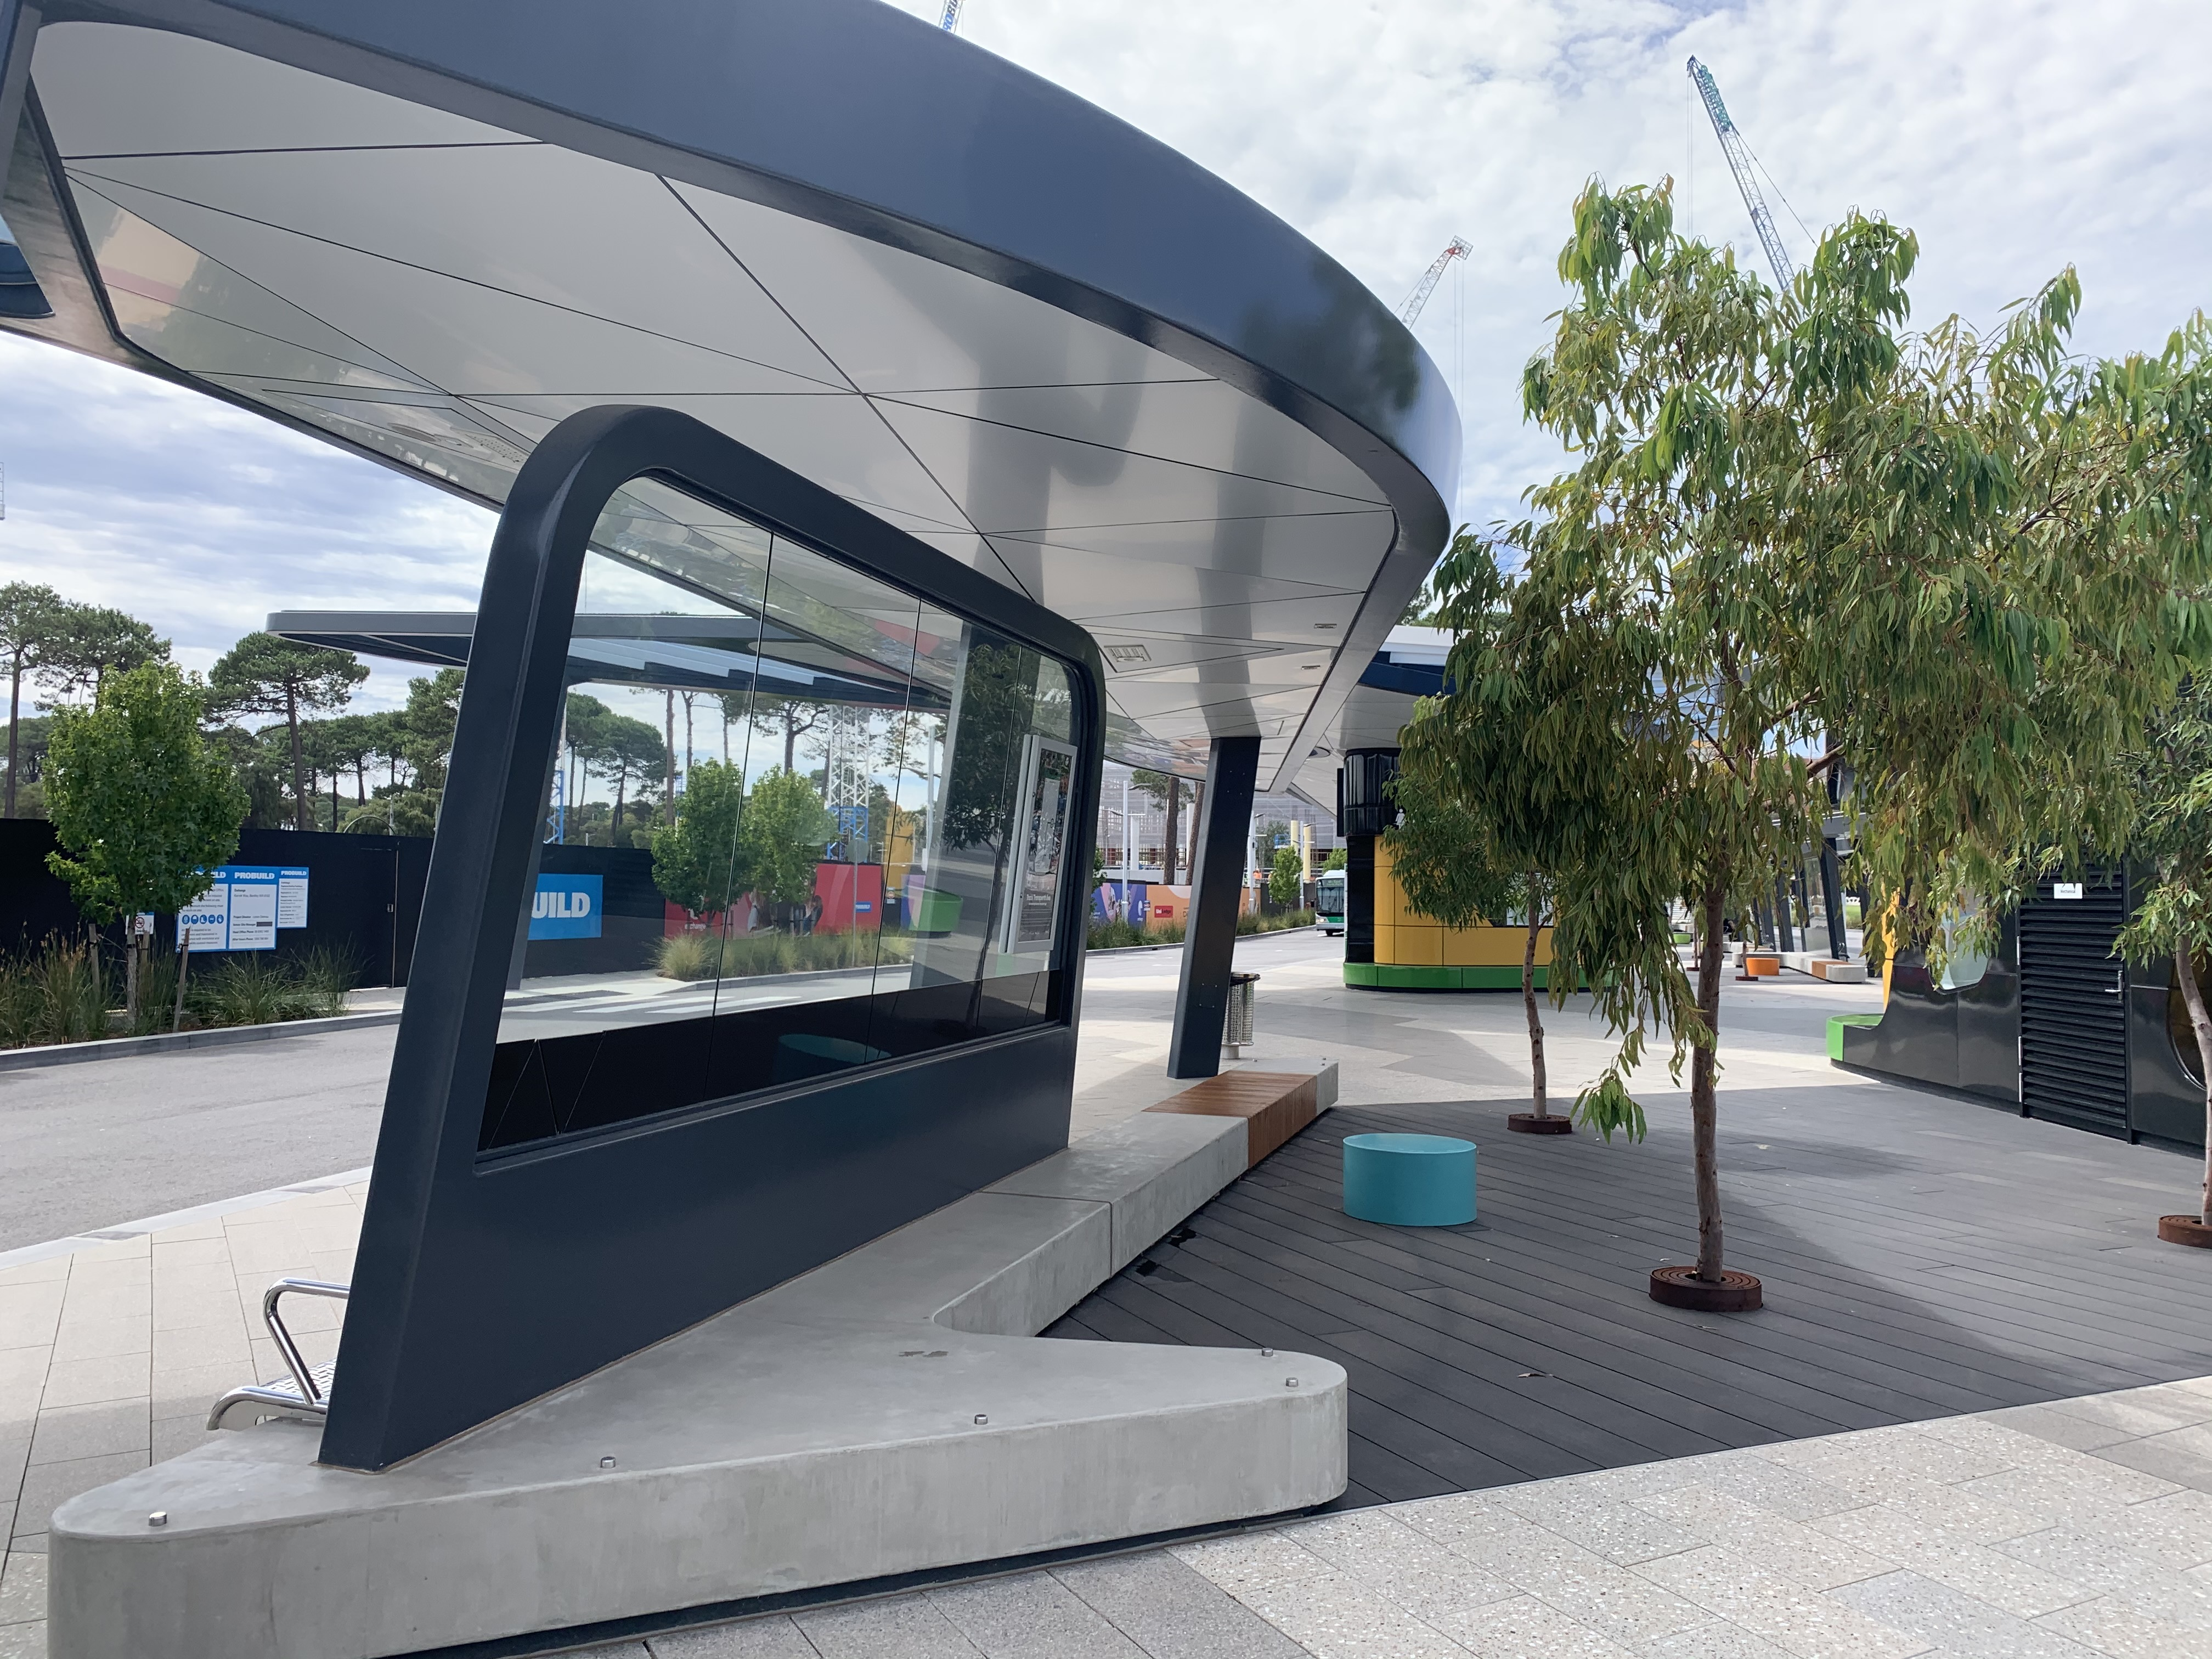 Transport hub gets top marks for durability at Perth's Curtin University